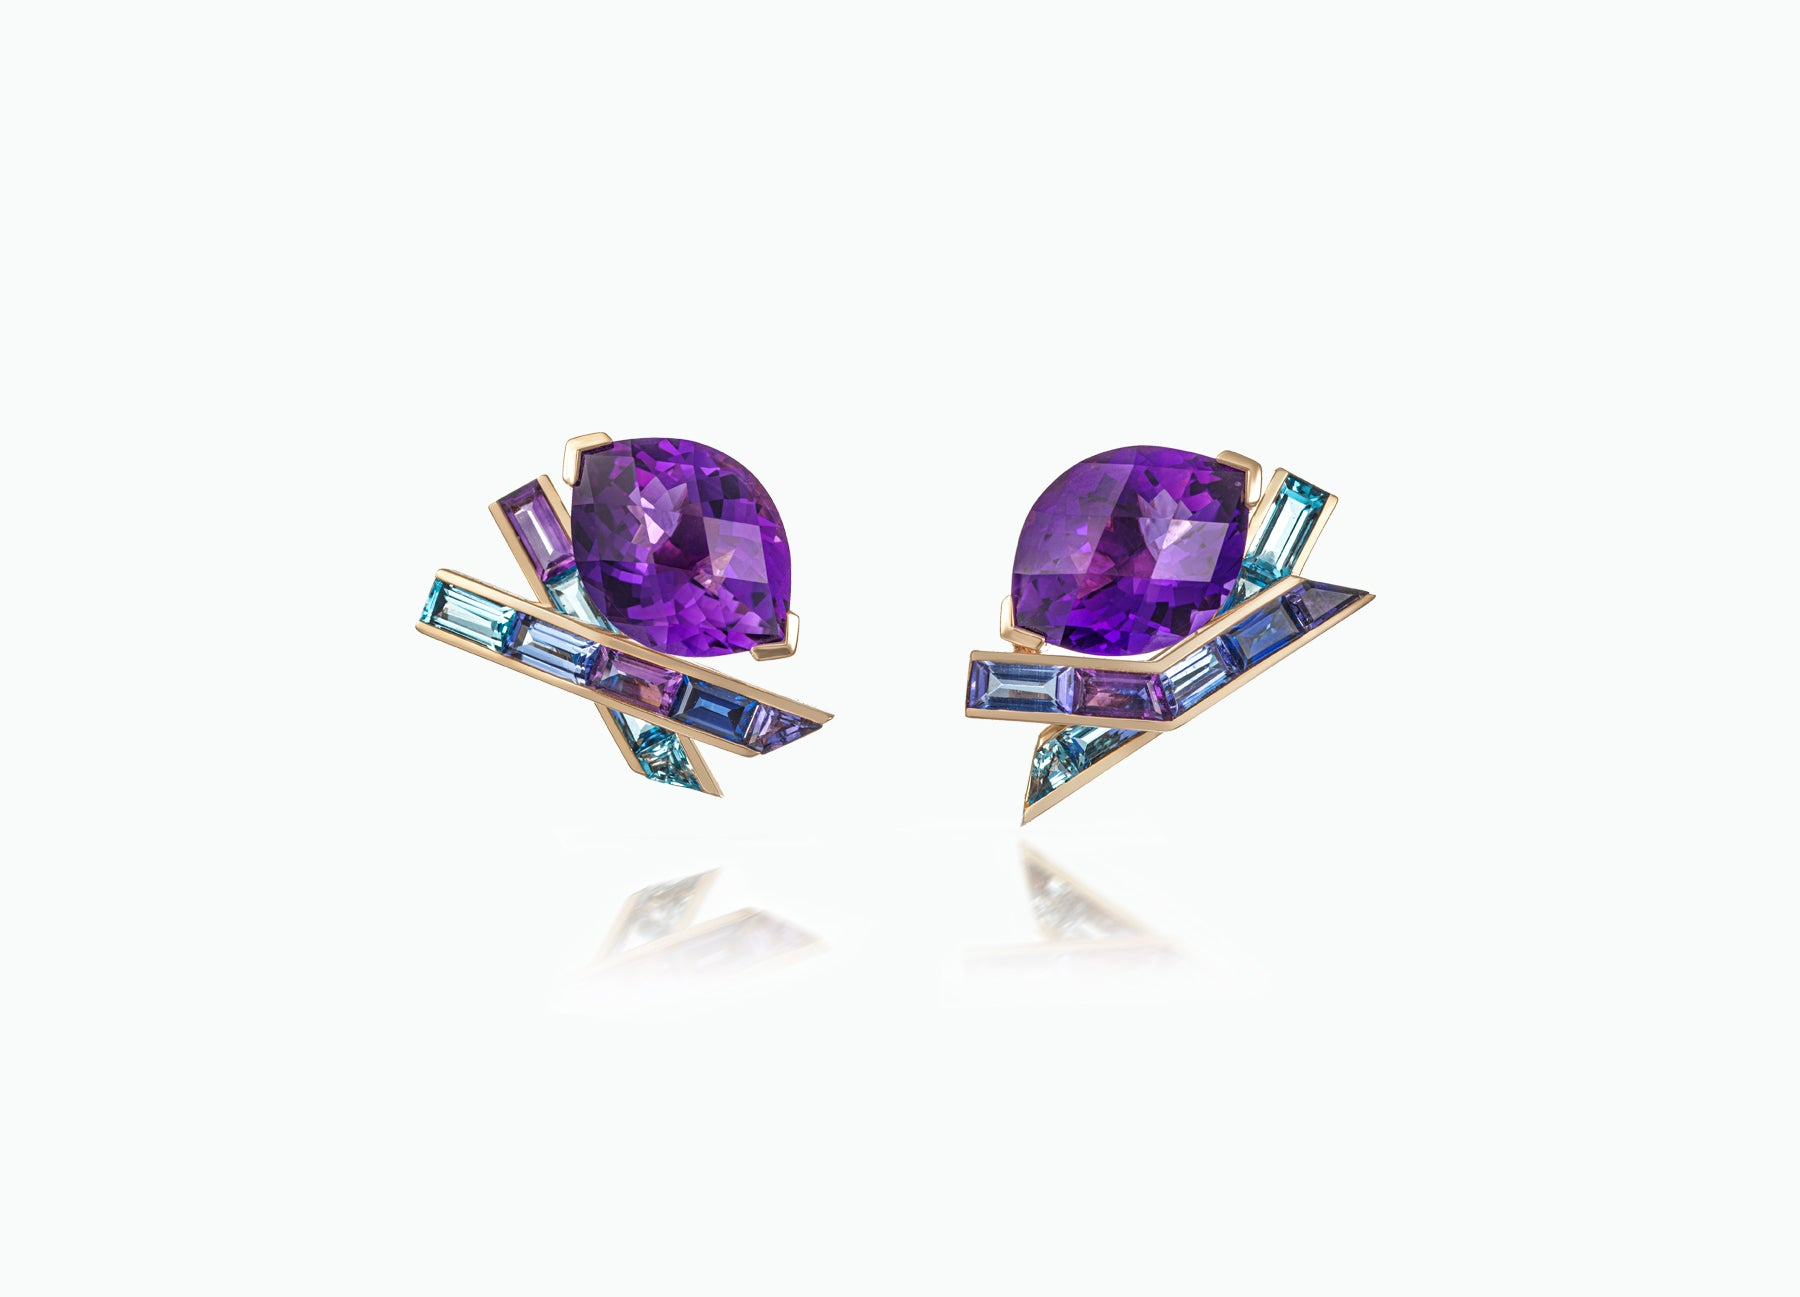 AMETHYST COCKTAIL STUD EARRINGS